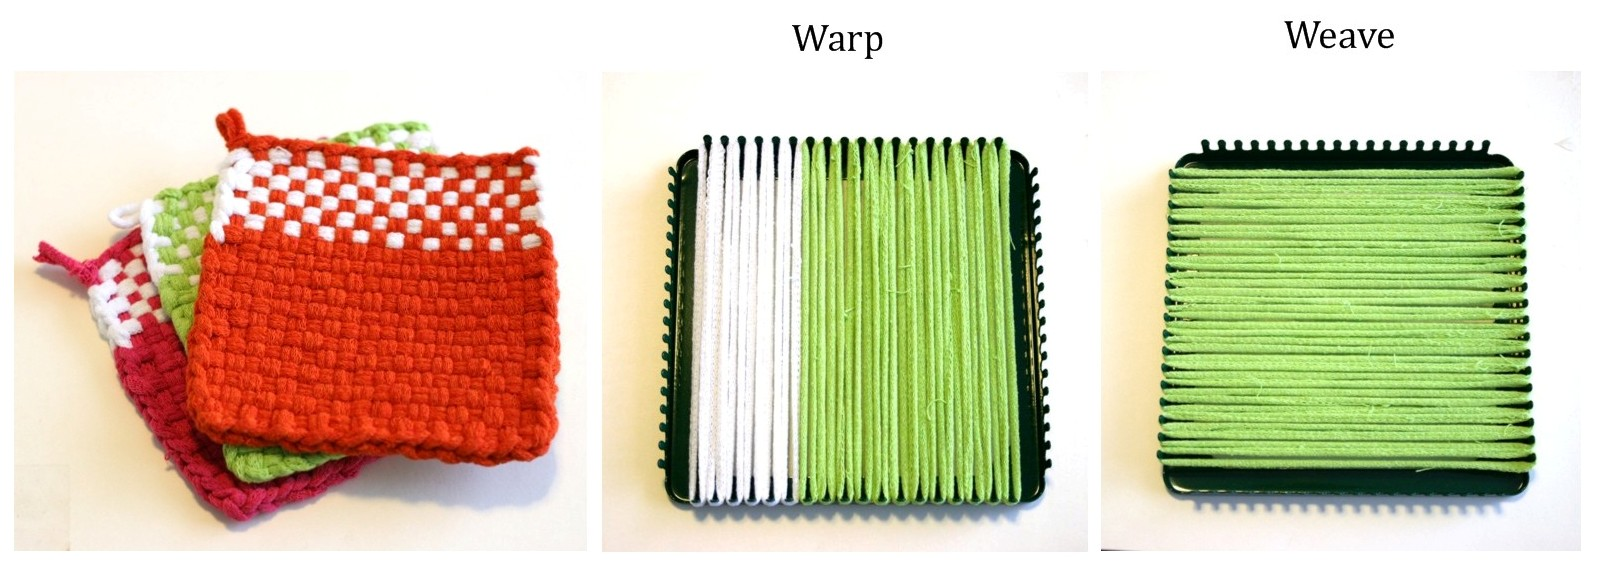 Loom Potholder Tutorial V E R Y P I N K C O M Knitting Patterns And Video Tutorials